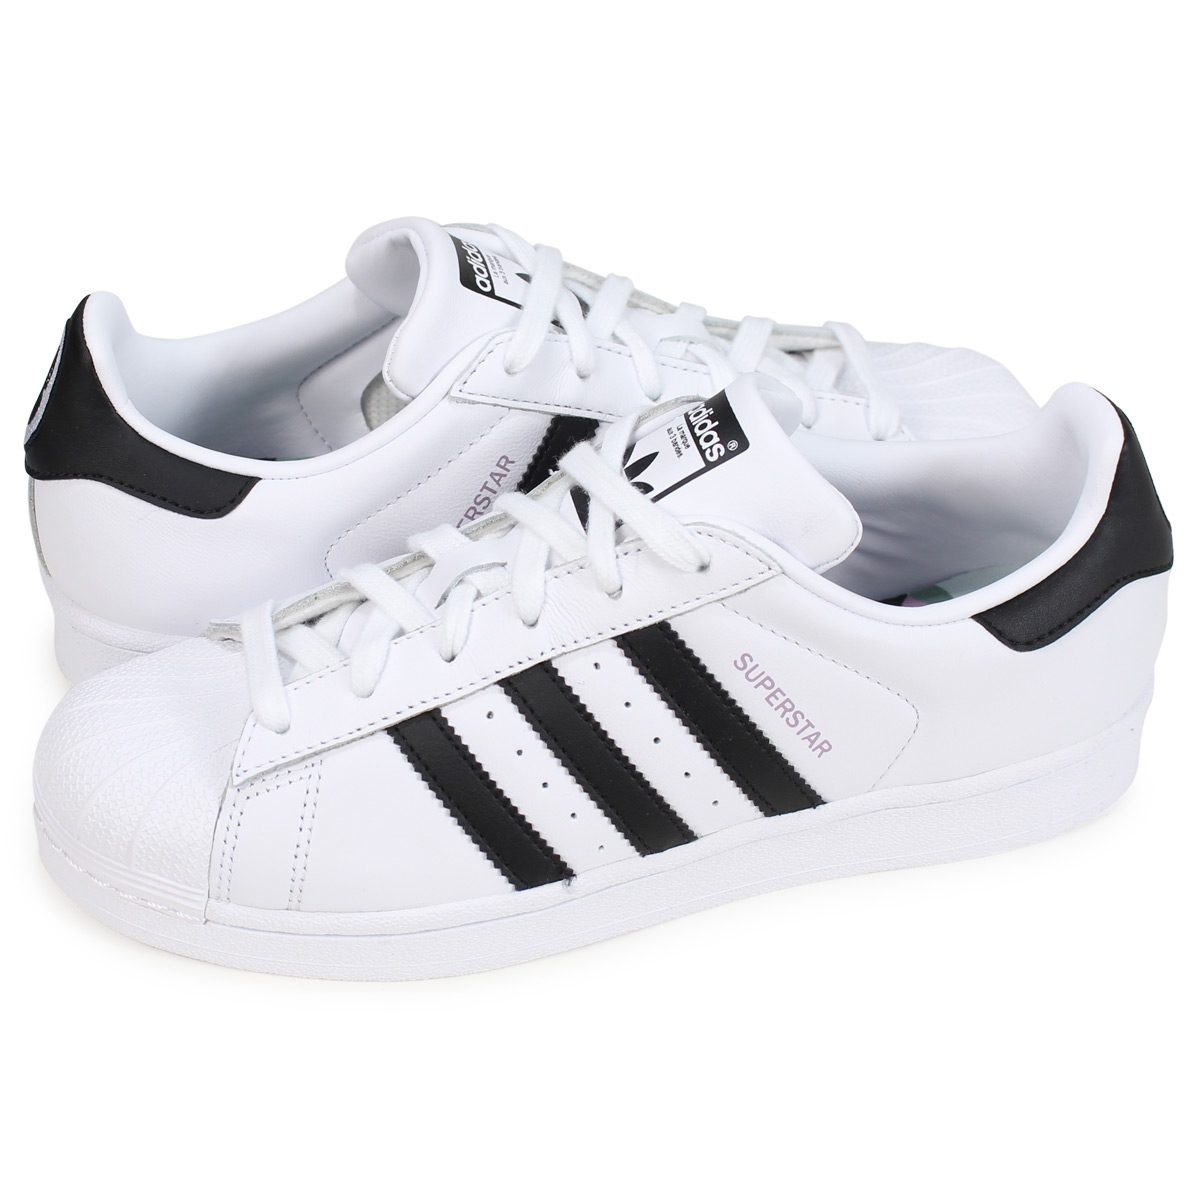 e320cd6ca2ca adidas Originals SUPERSTAR W Adidas originals superstar sneakers Lady s  white CM8414  load planned Shinnyu load in reservation product 12 18  containing  ...